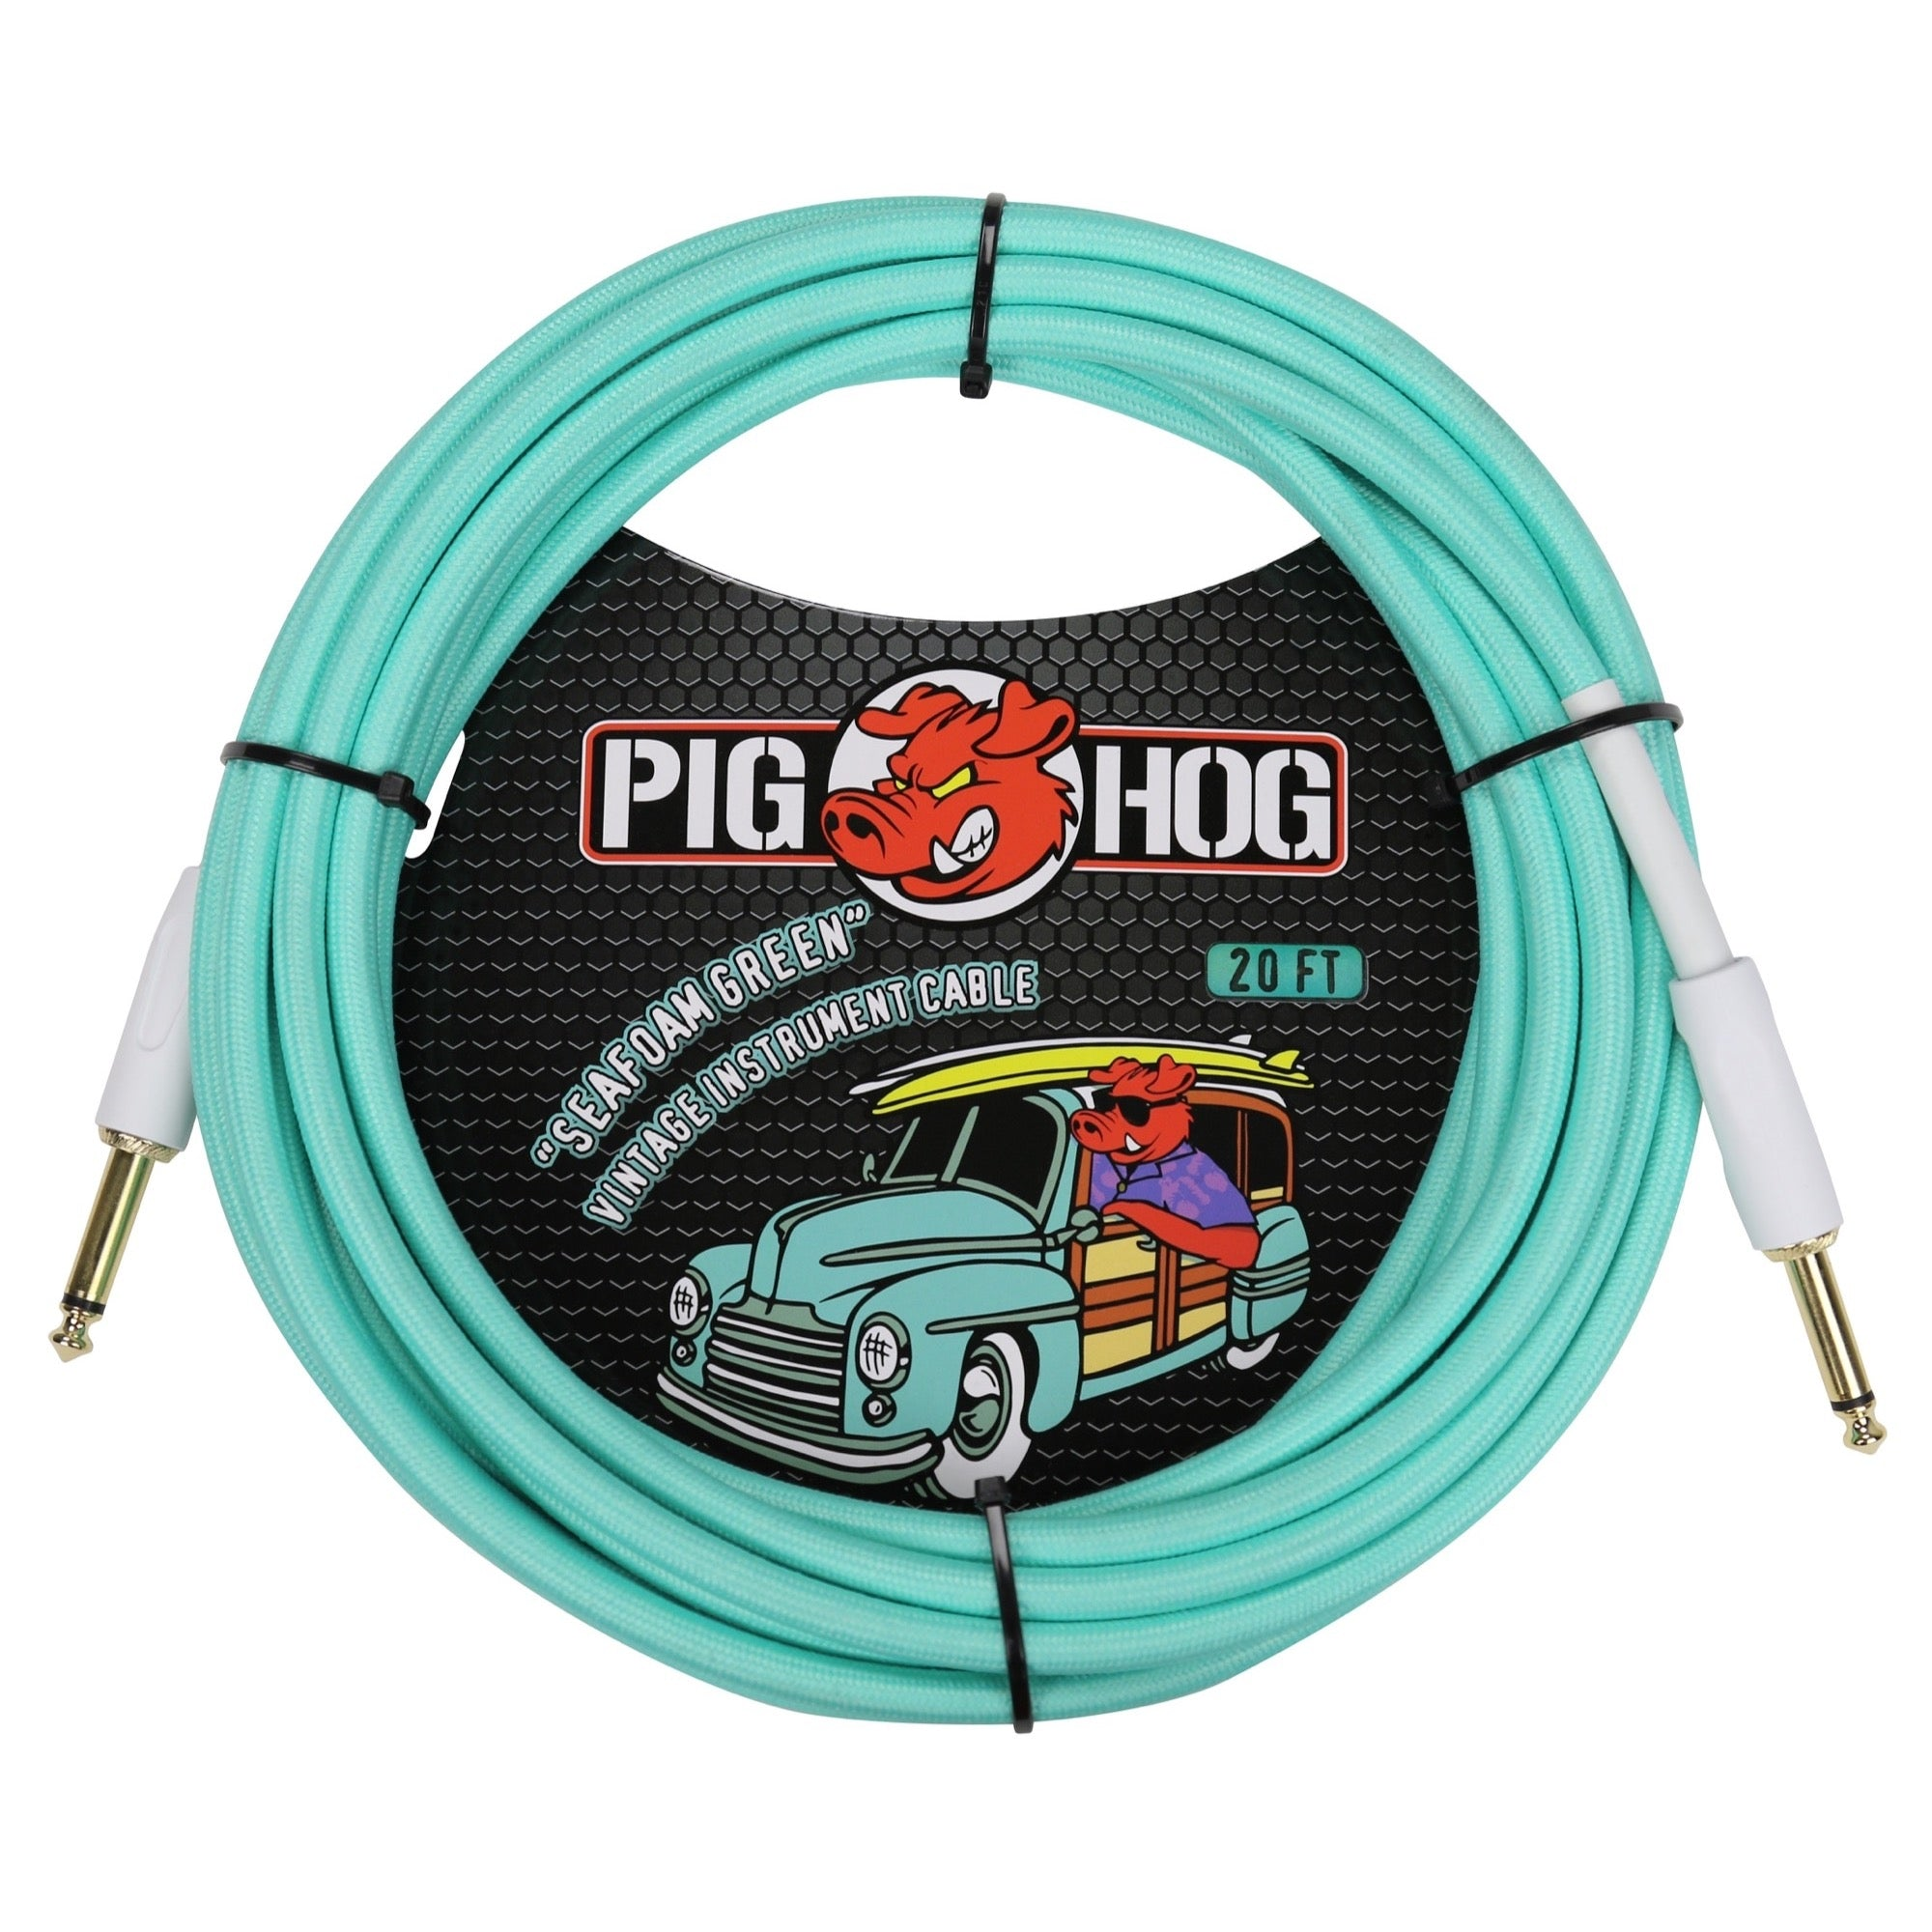 Pig Hog Vintage Series Instrument Cable, 1/4 Inch Straight to 1/4 Inch Straight, Seafoam Green, 20'